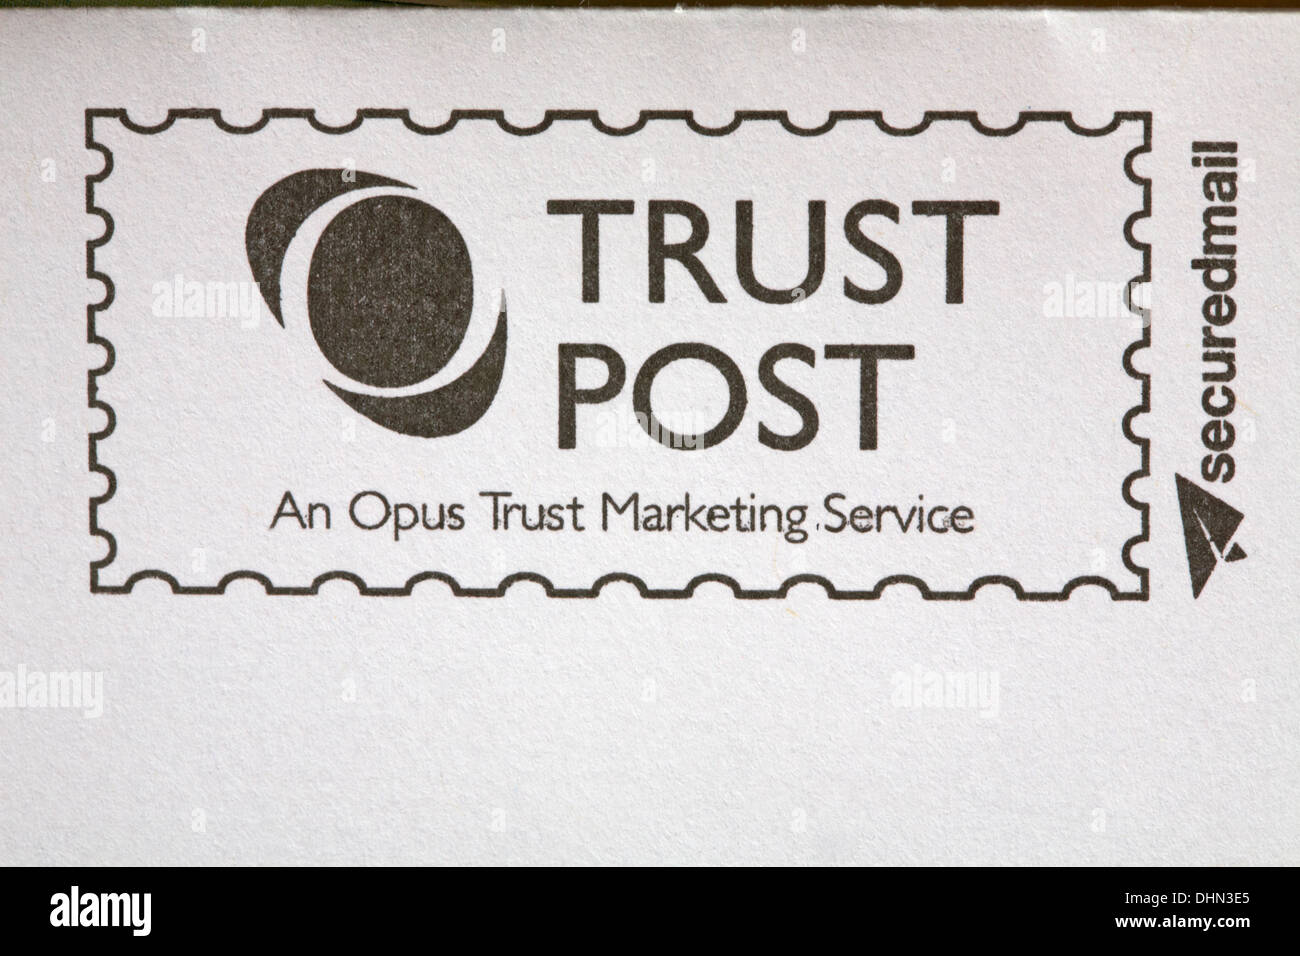 Trust Post An Opus Marketing Service Securedmail Information On Envelope Water Bill From Sembcorp